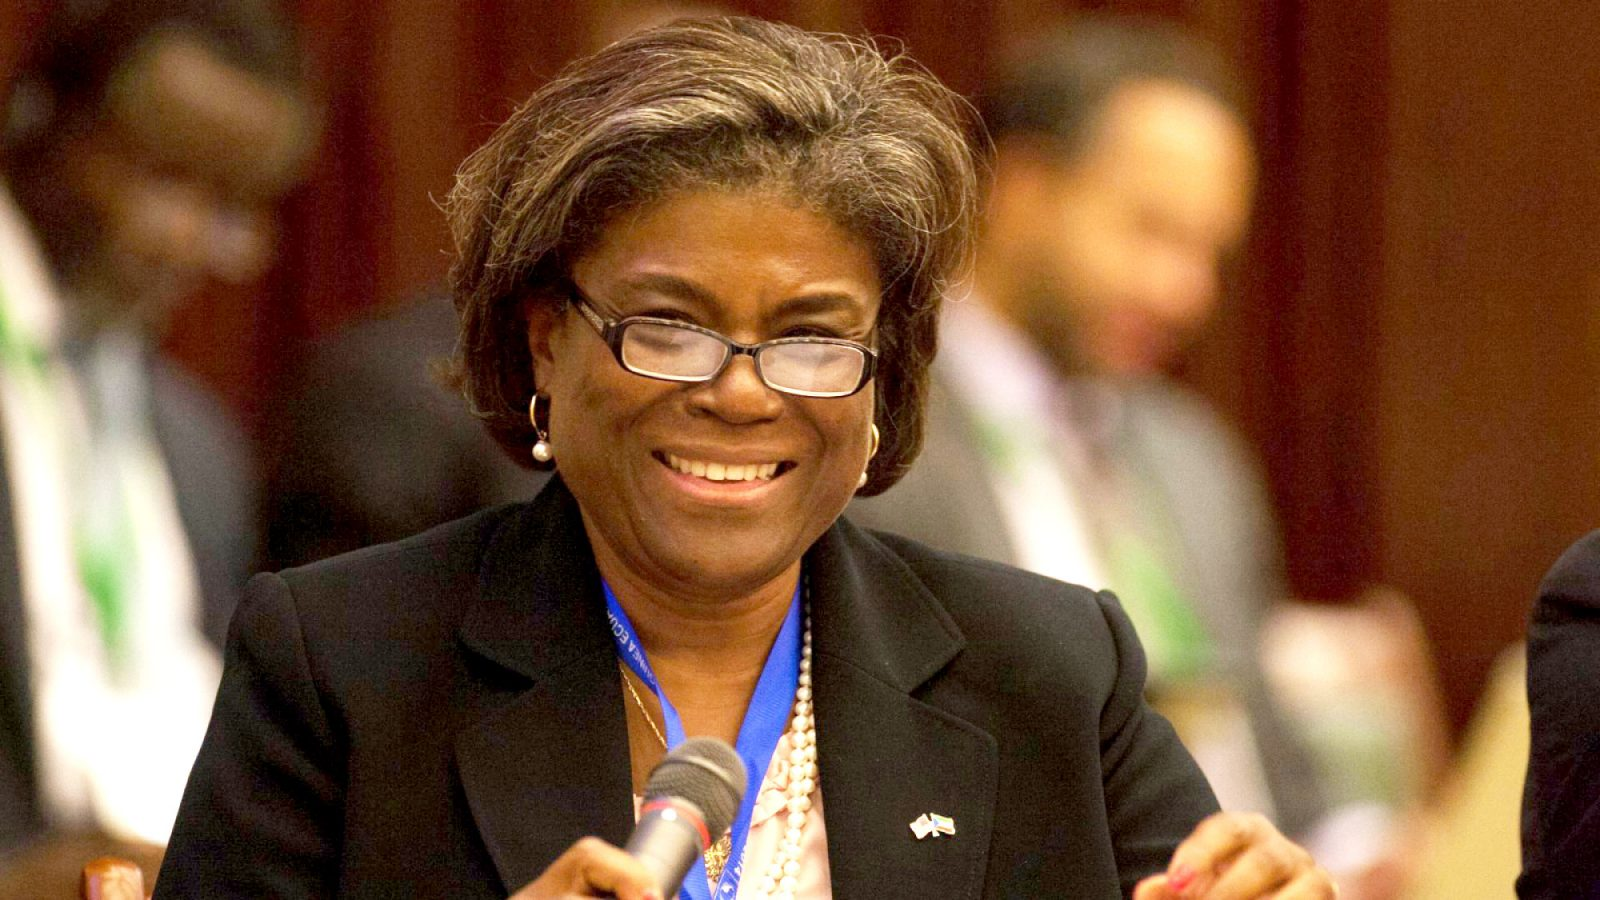 Linda Thomas-Greenfield sits down with a microphone in front of her.